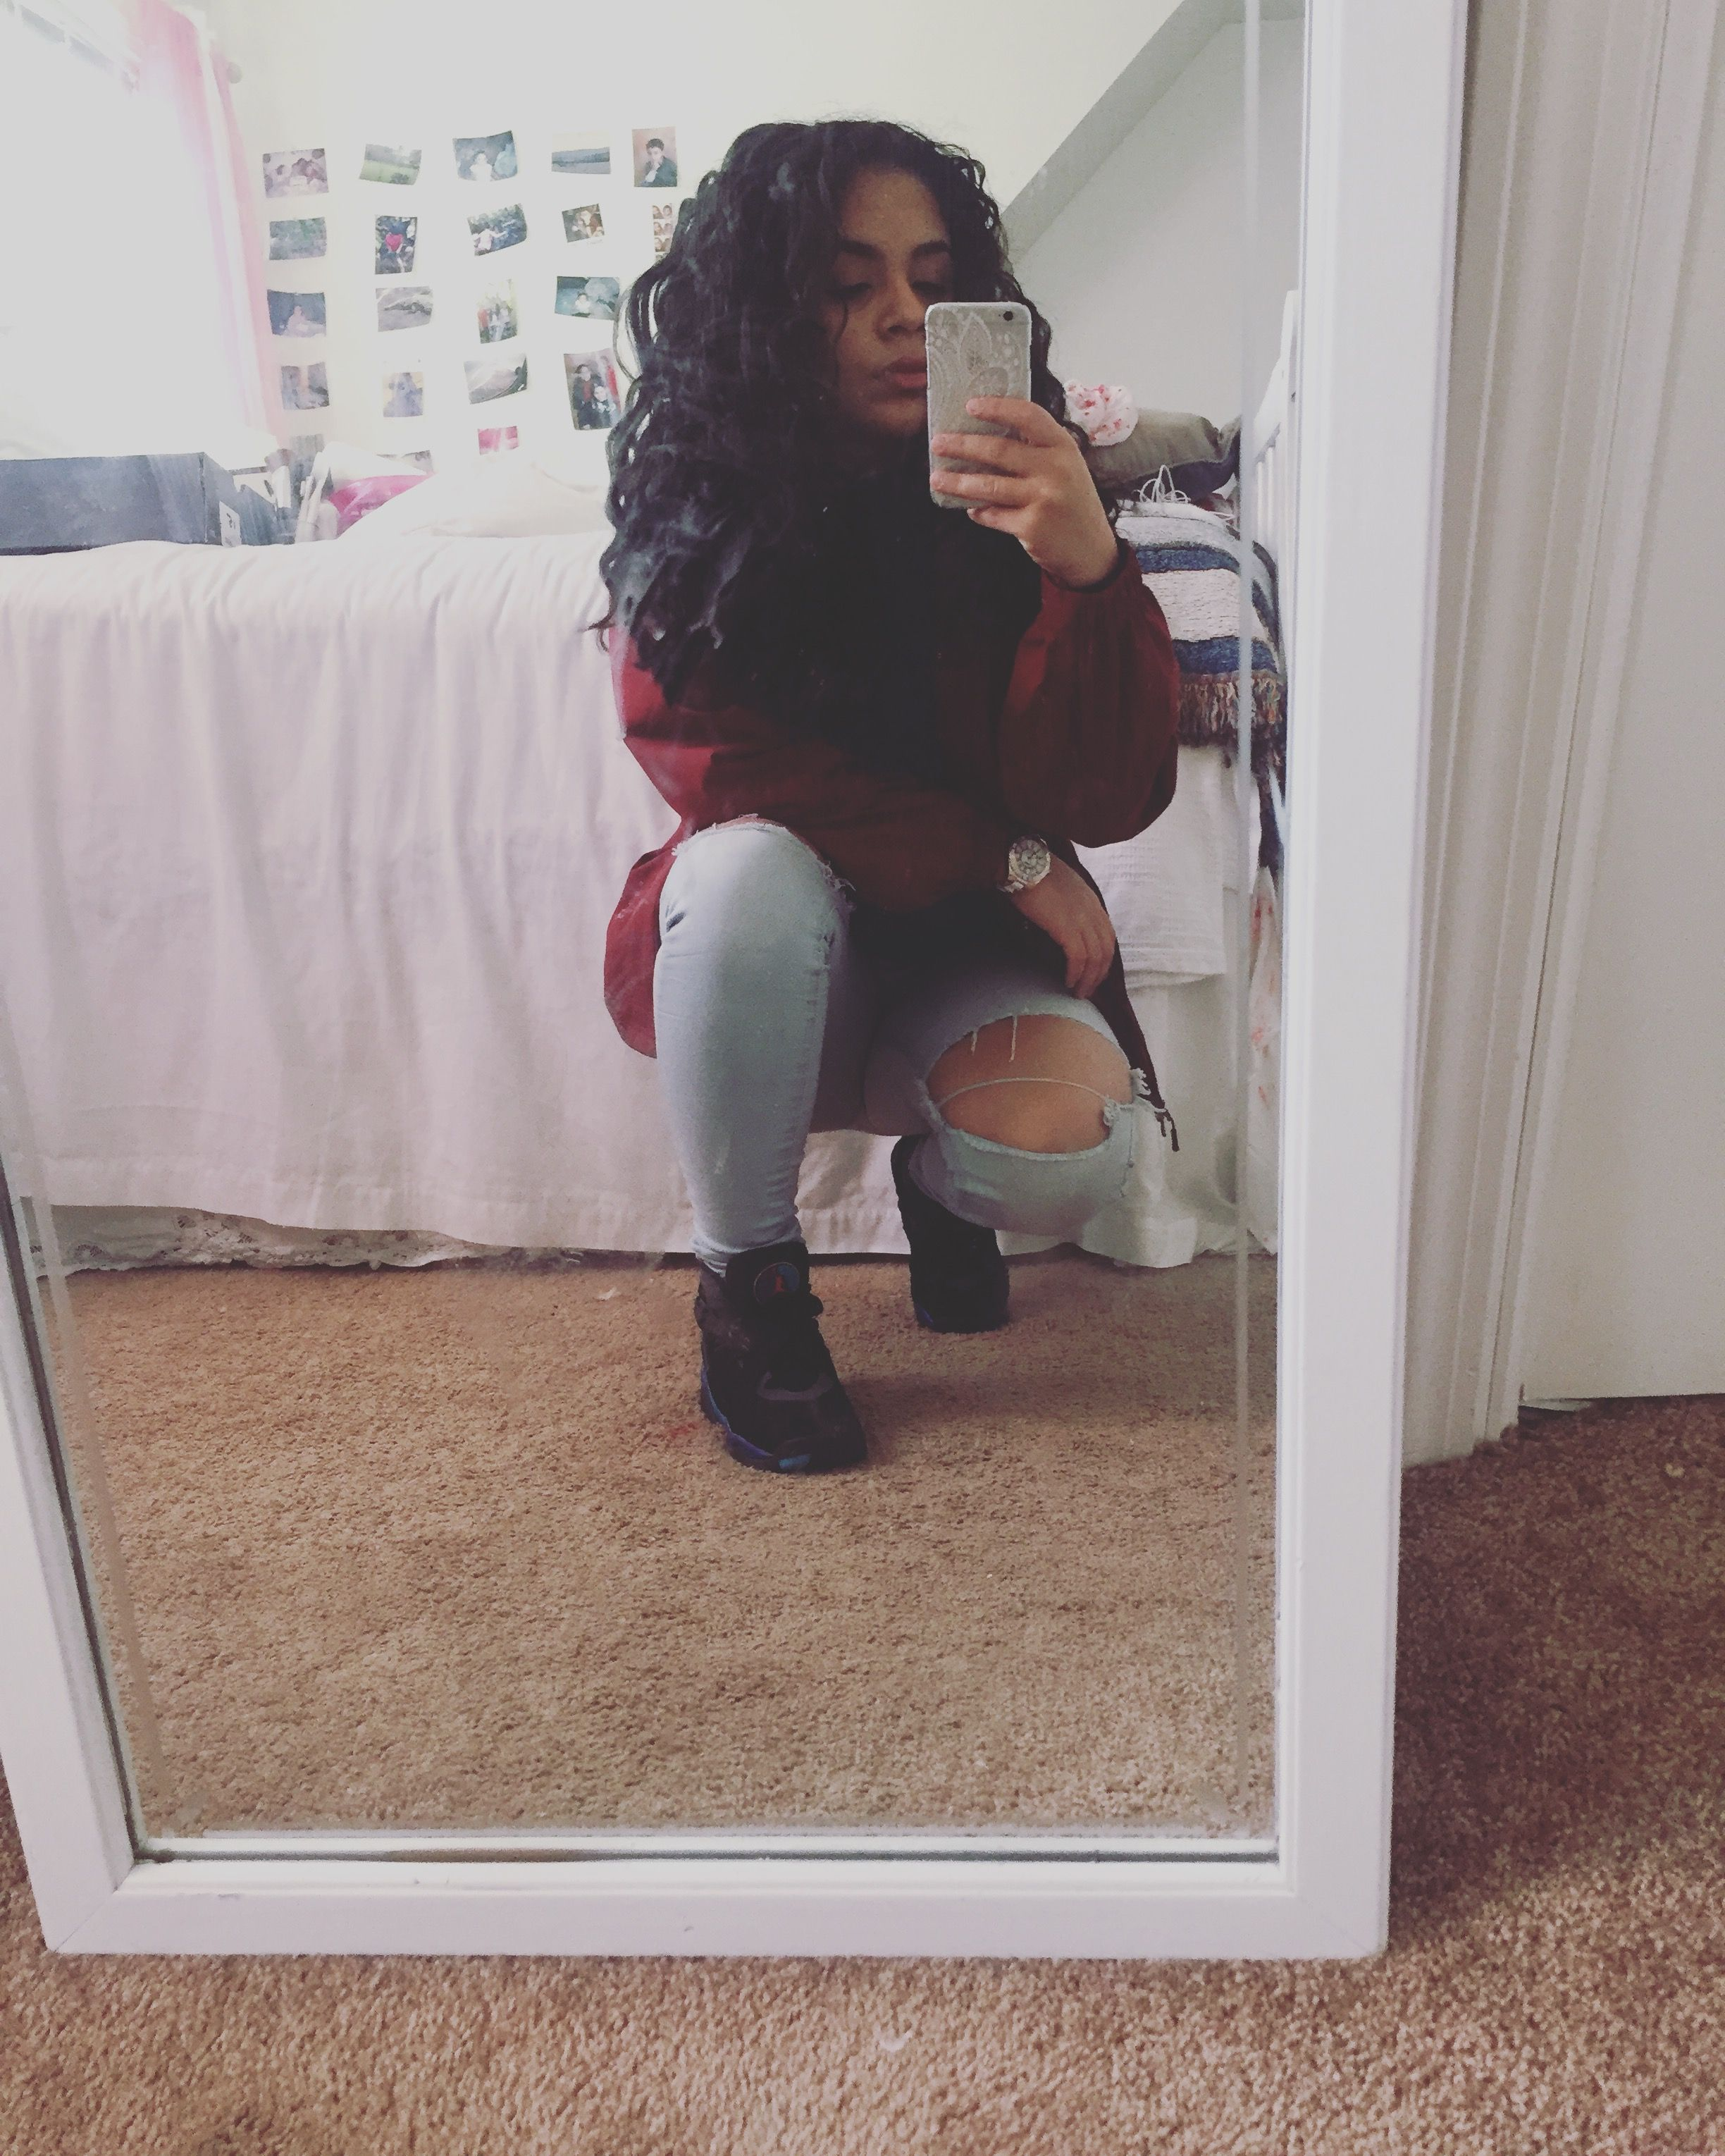 Urban style with ripped jeans, Jordan's, windbreaker, and black shirt. And curly hair